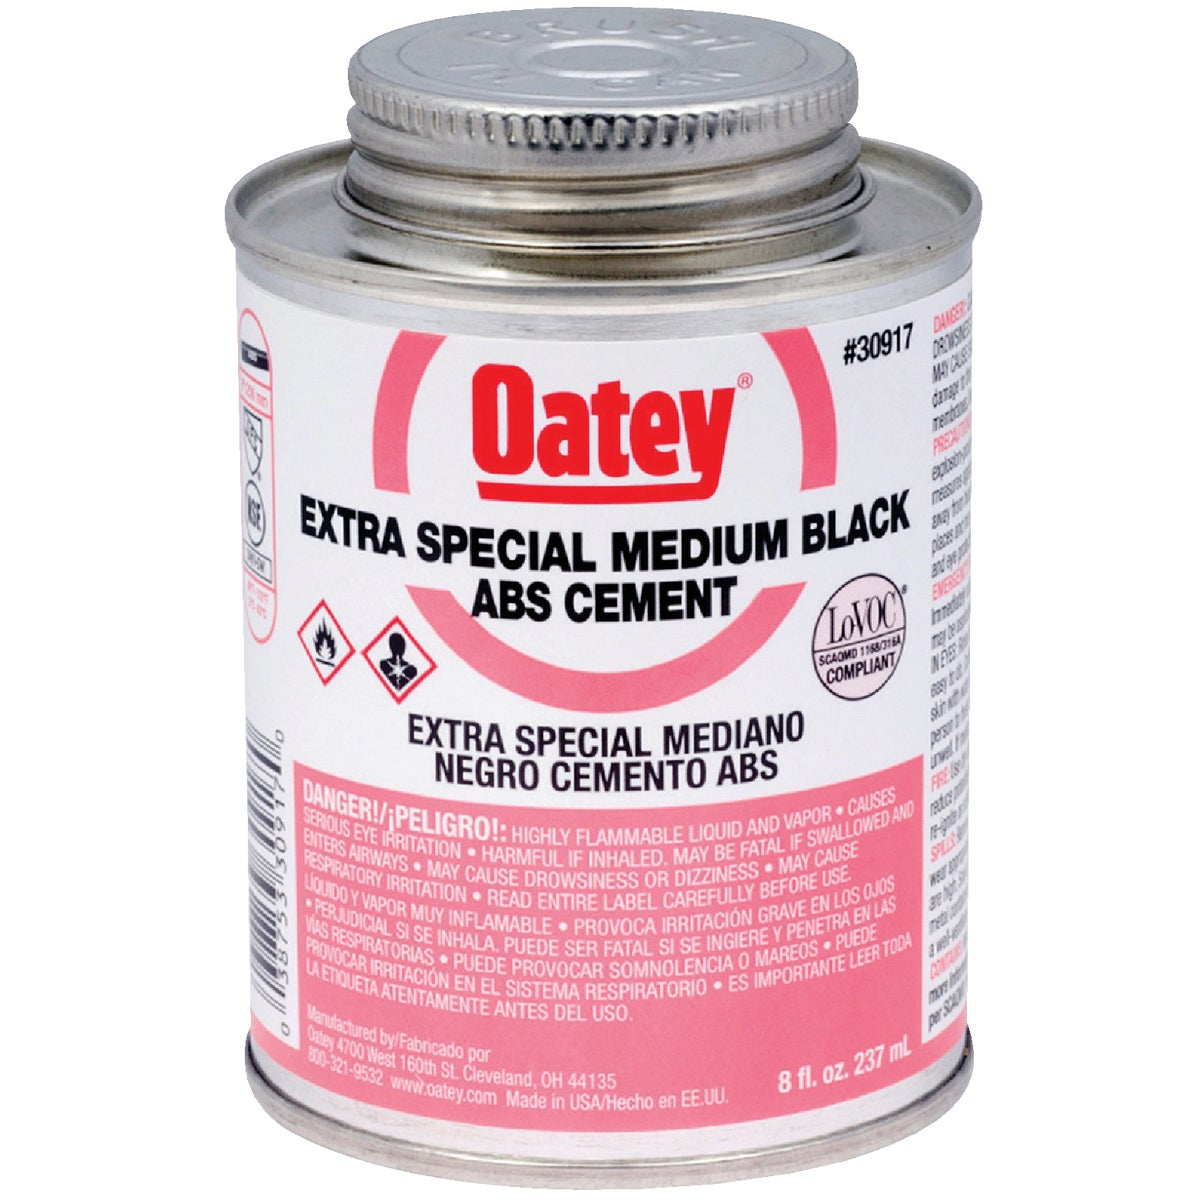 Oatey 1/2PINT ABS CEMENT 30917